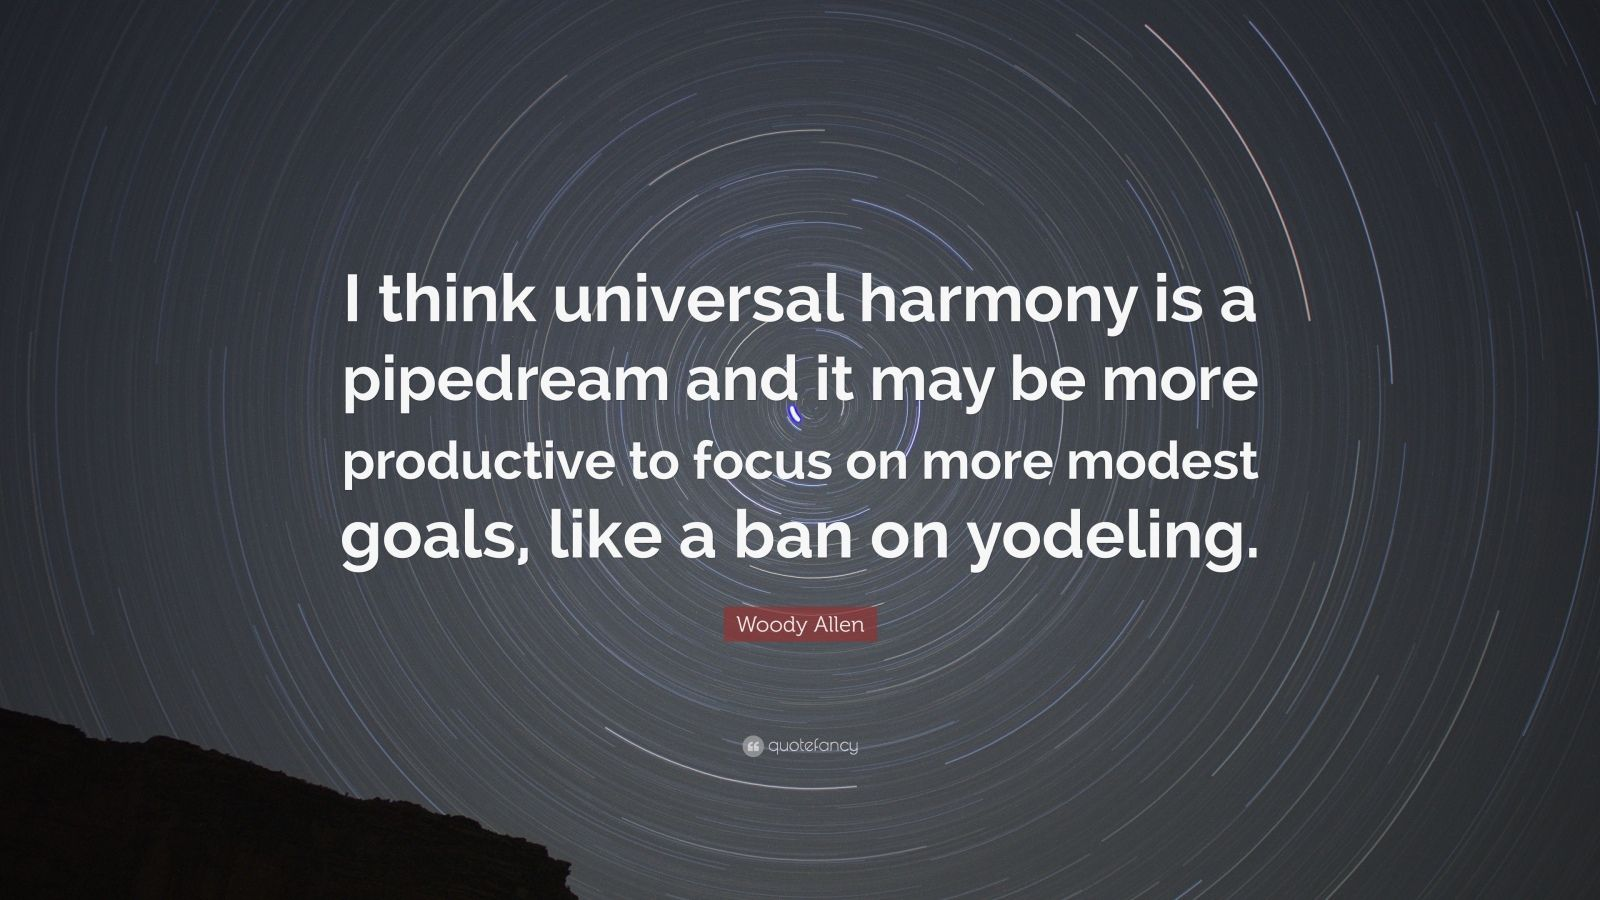 """Woody Allen Quote: """"I think universal harmony is a pipedream and it may be more productive to focus on more modest goals, like a ban on yodeling."""""""